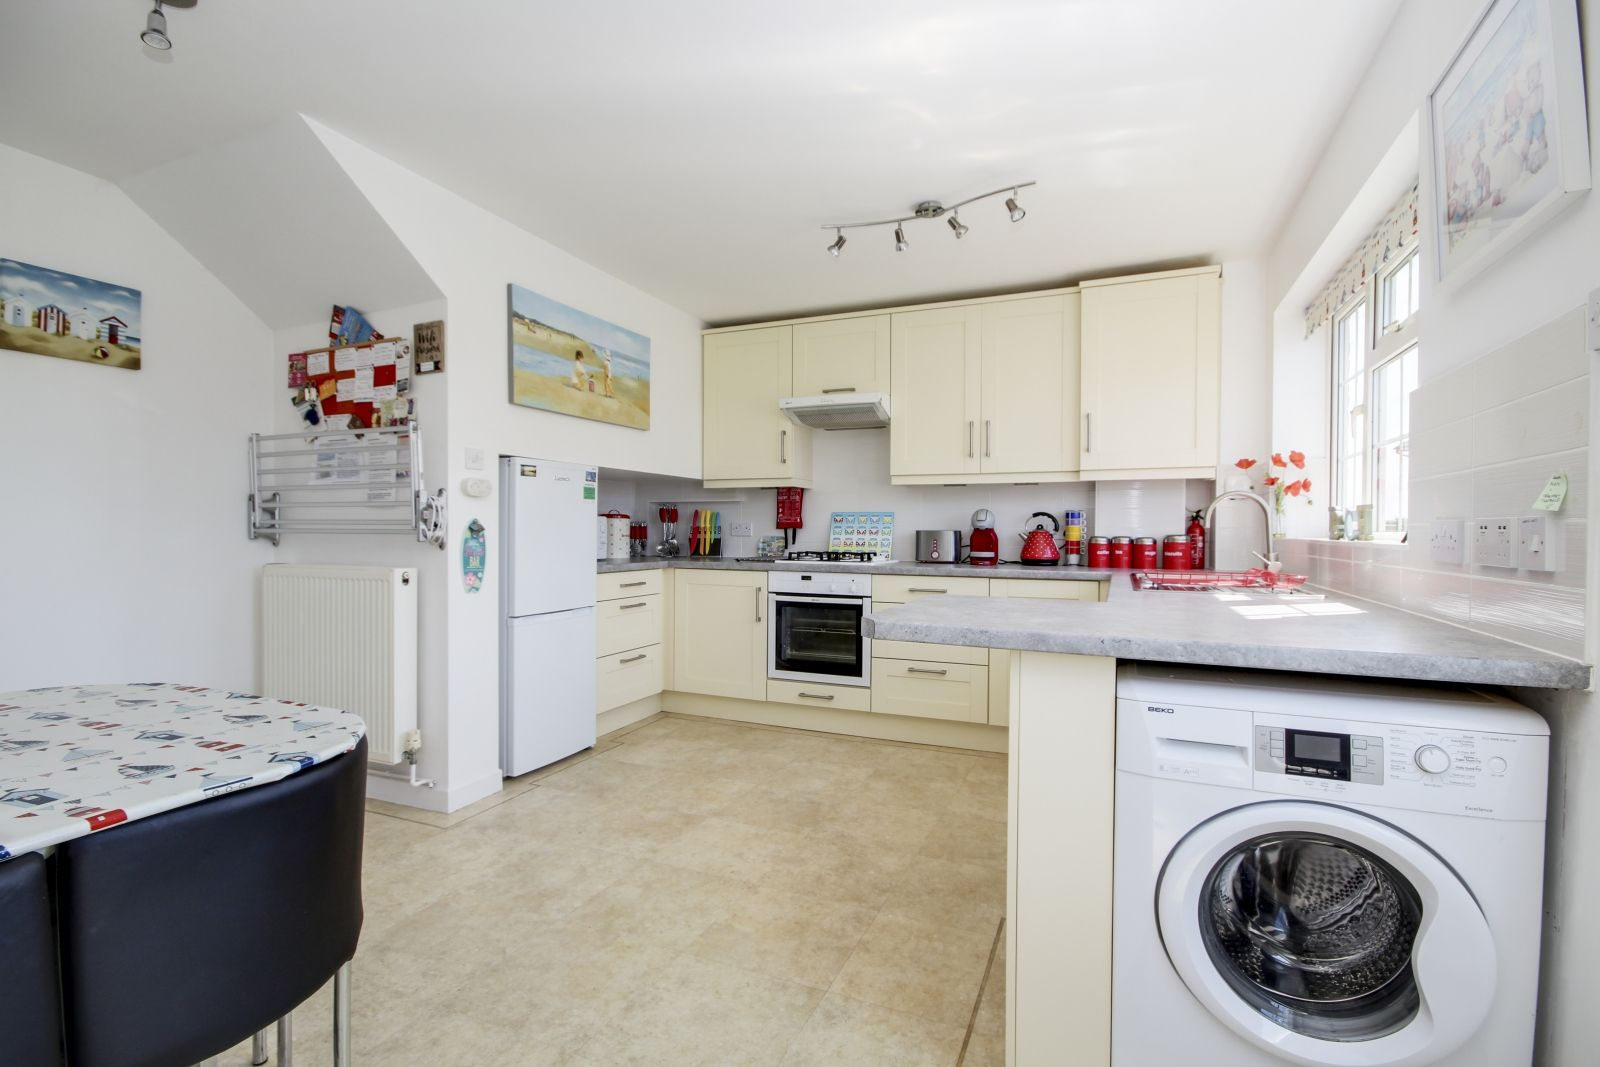 2 bed  for sale in Ferring Marine  - Property Image 9